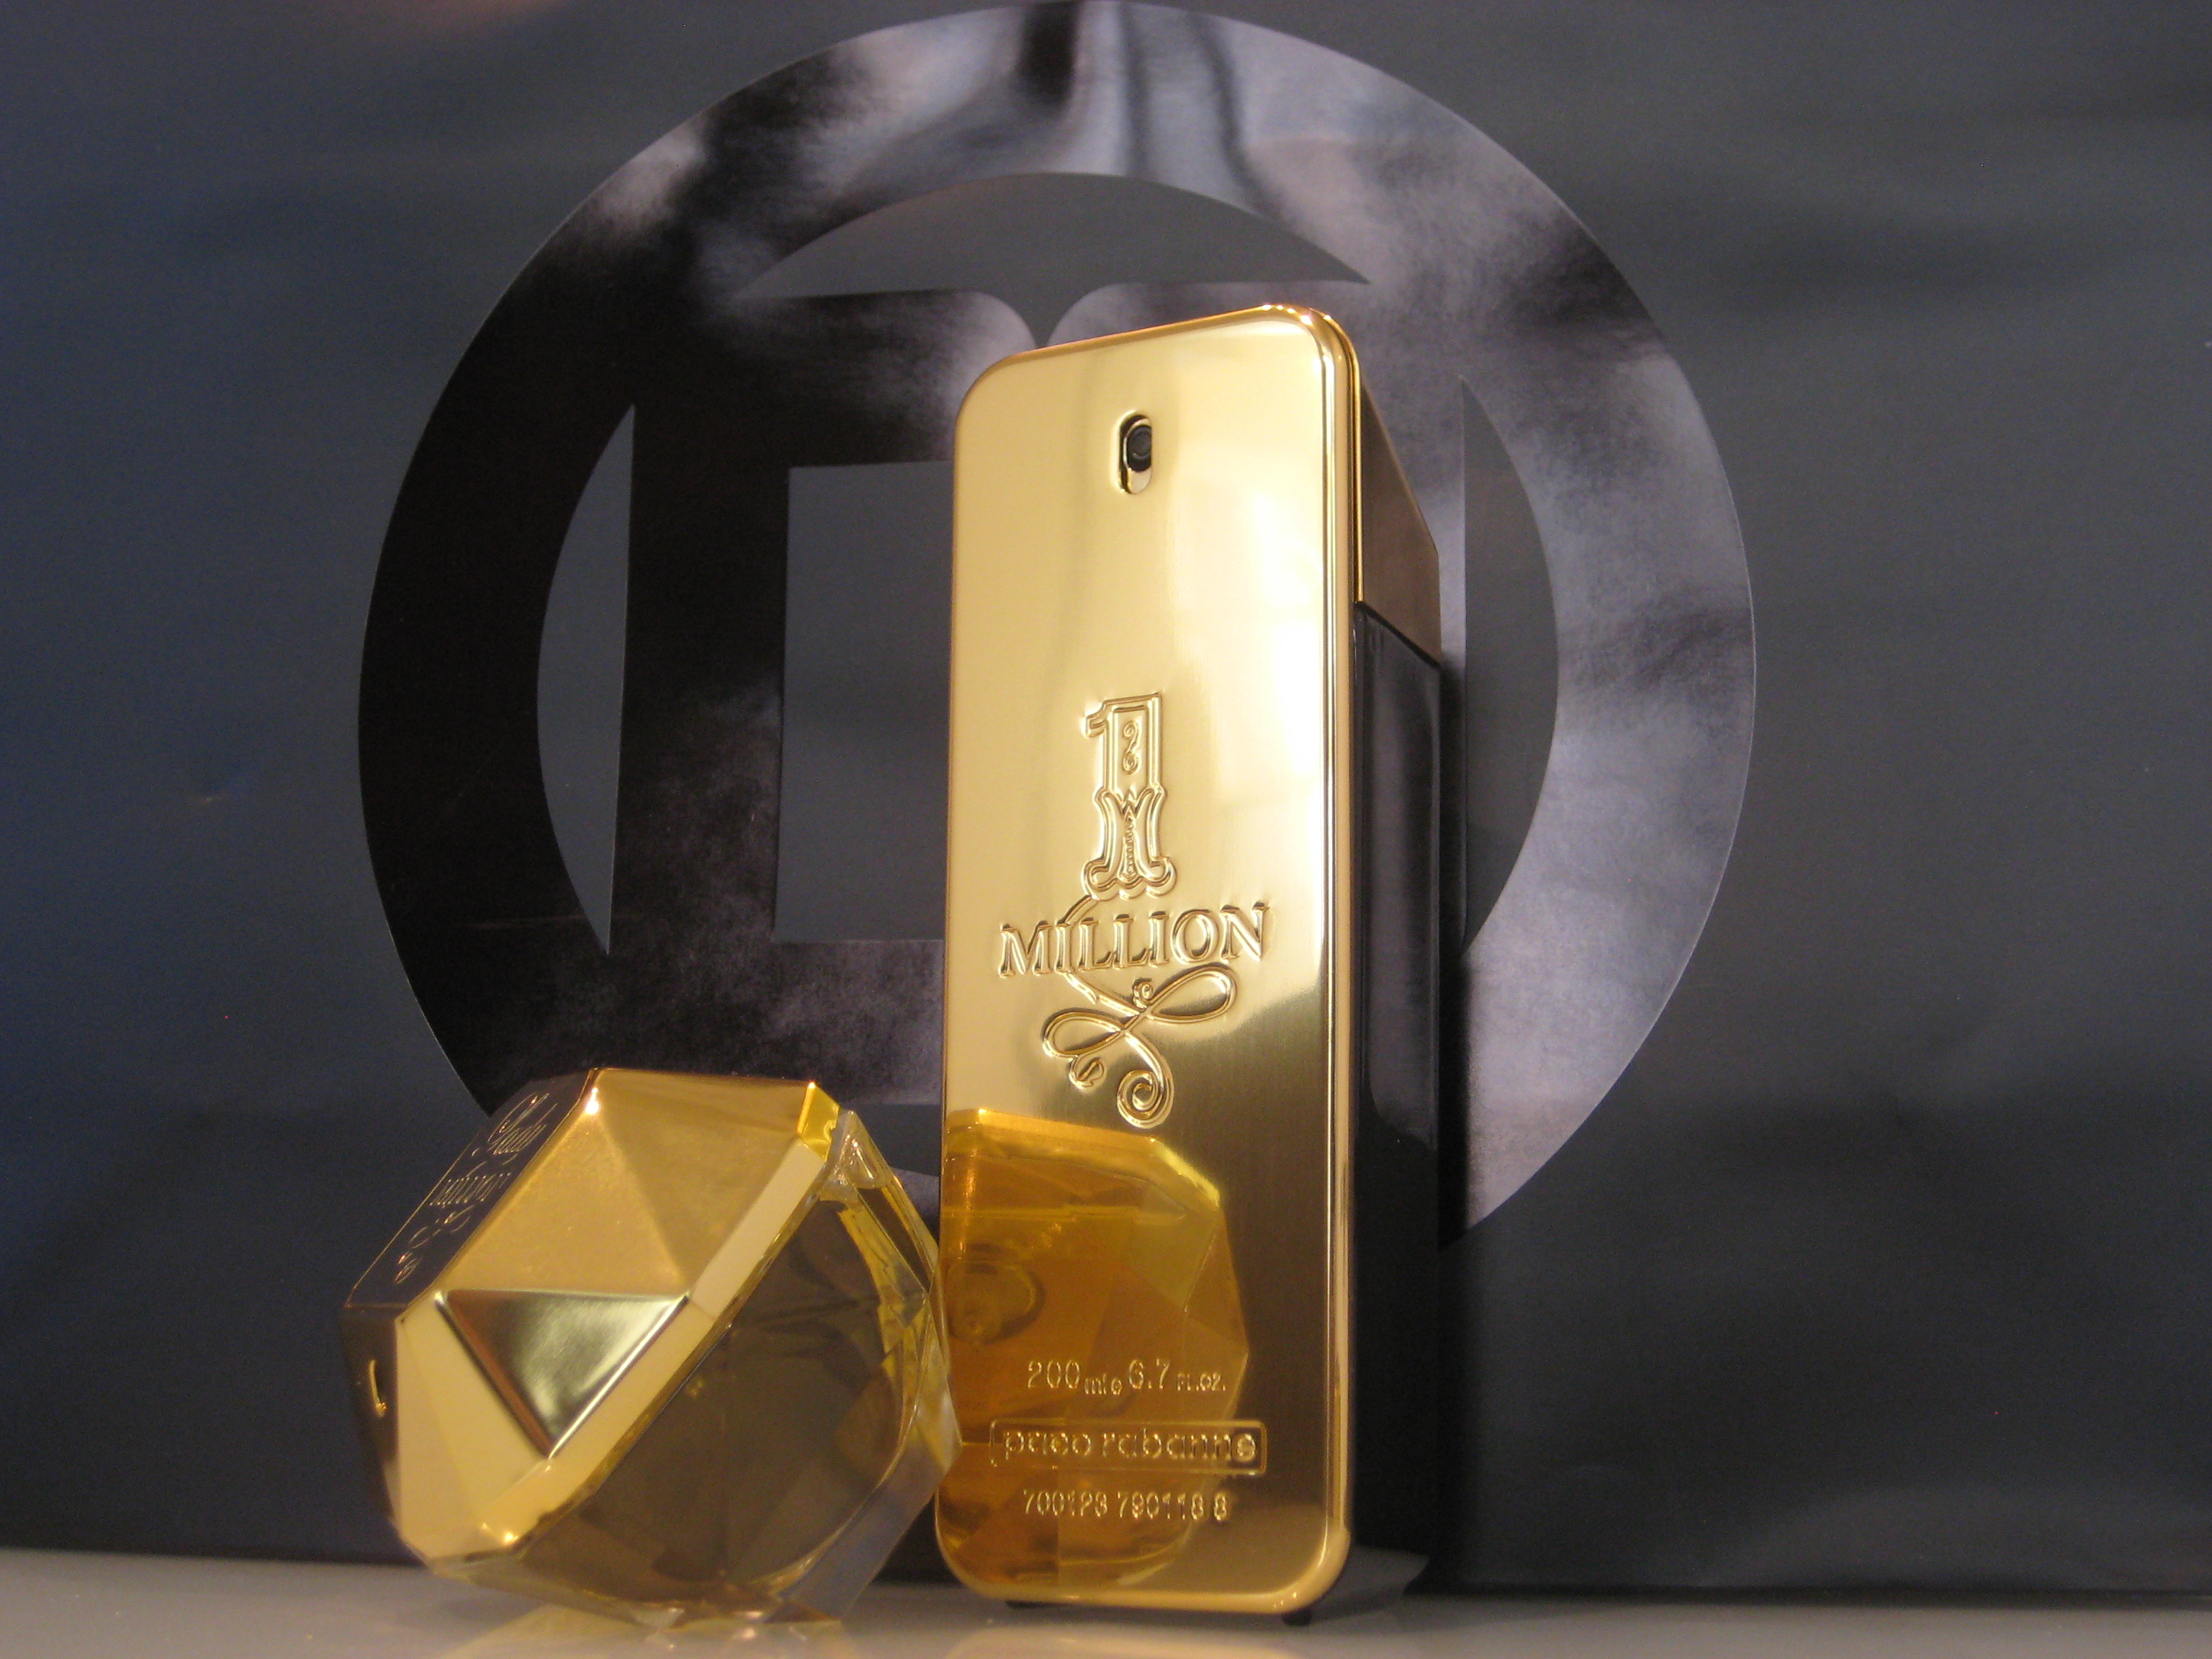 Lady Million Prive By Paco Rabanne Reviews In Perfume